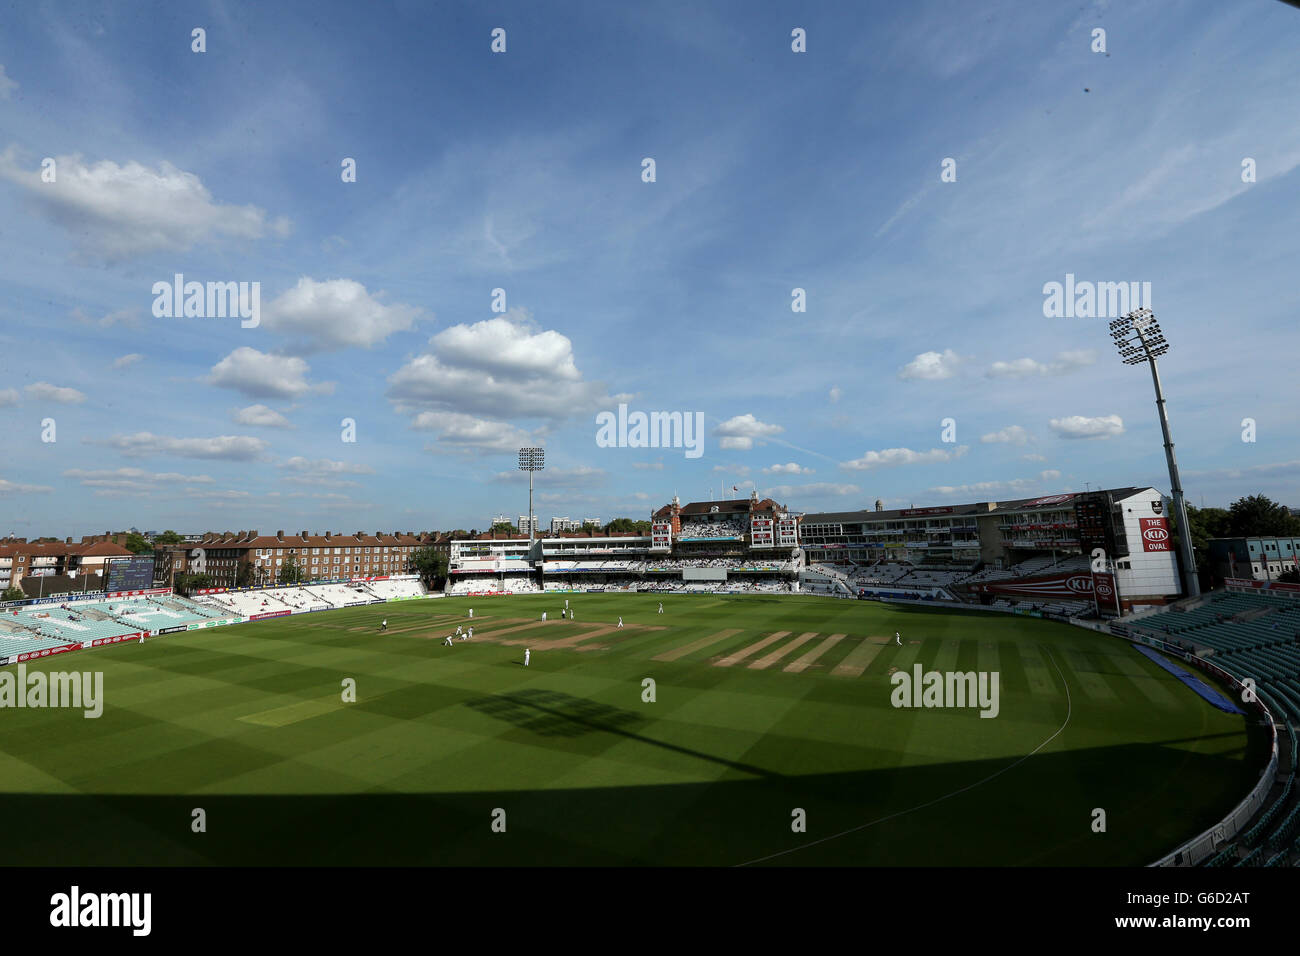 Cricket - LV=County Championship - Division One - Surrey v Derbyshire - The Kia Oval - Stock Image